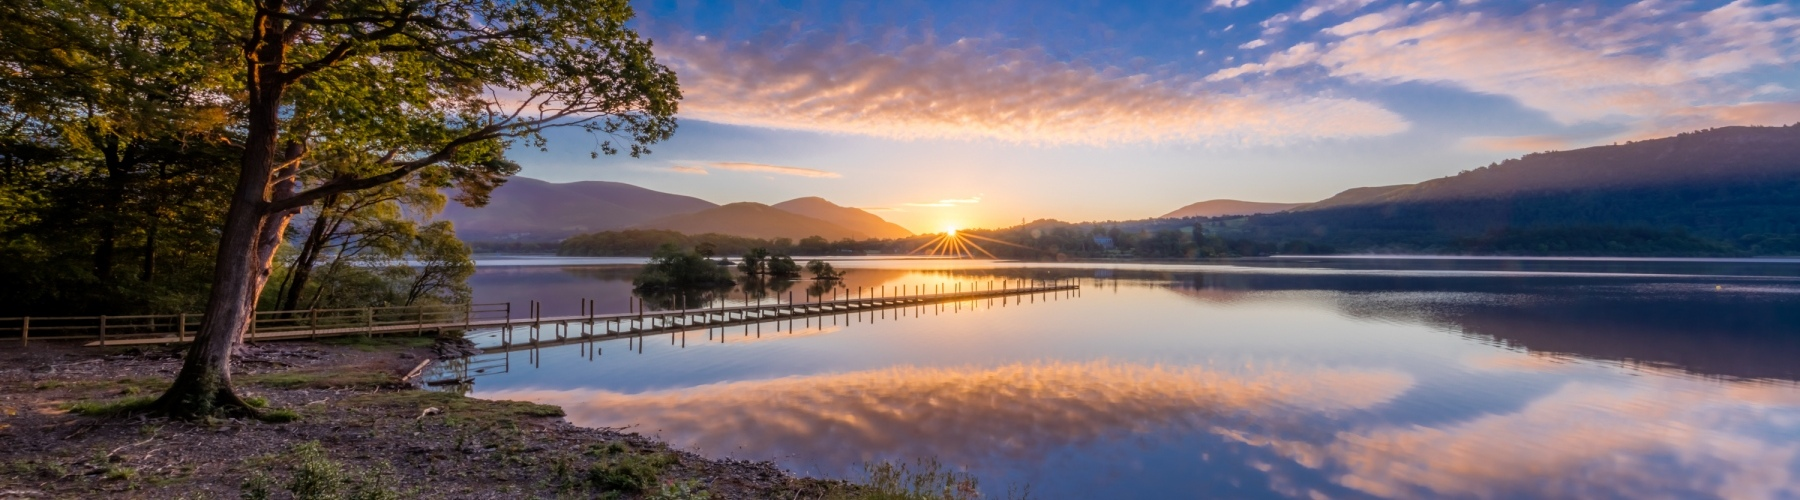 Dawn over Derwent Water